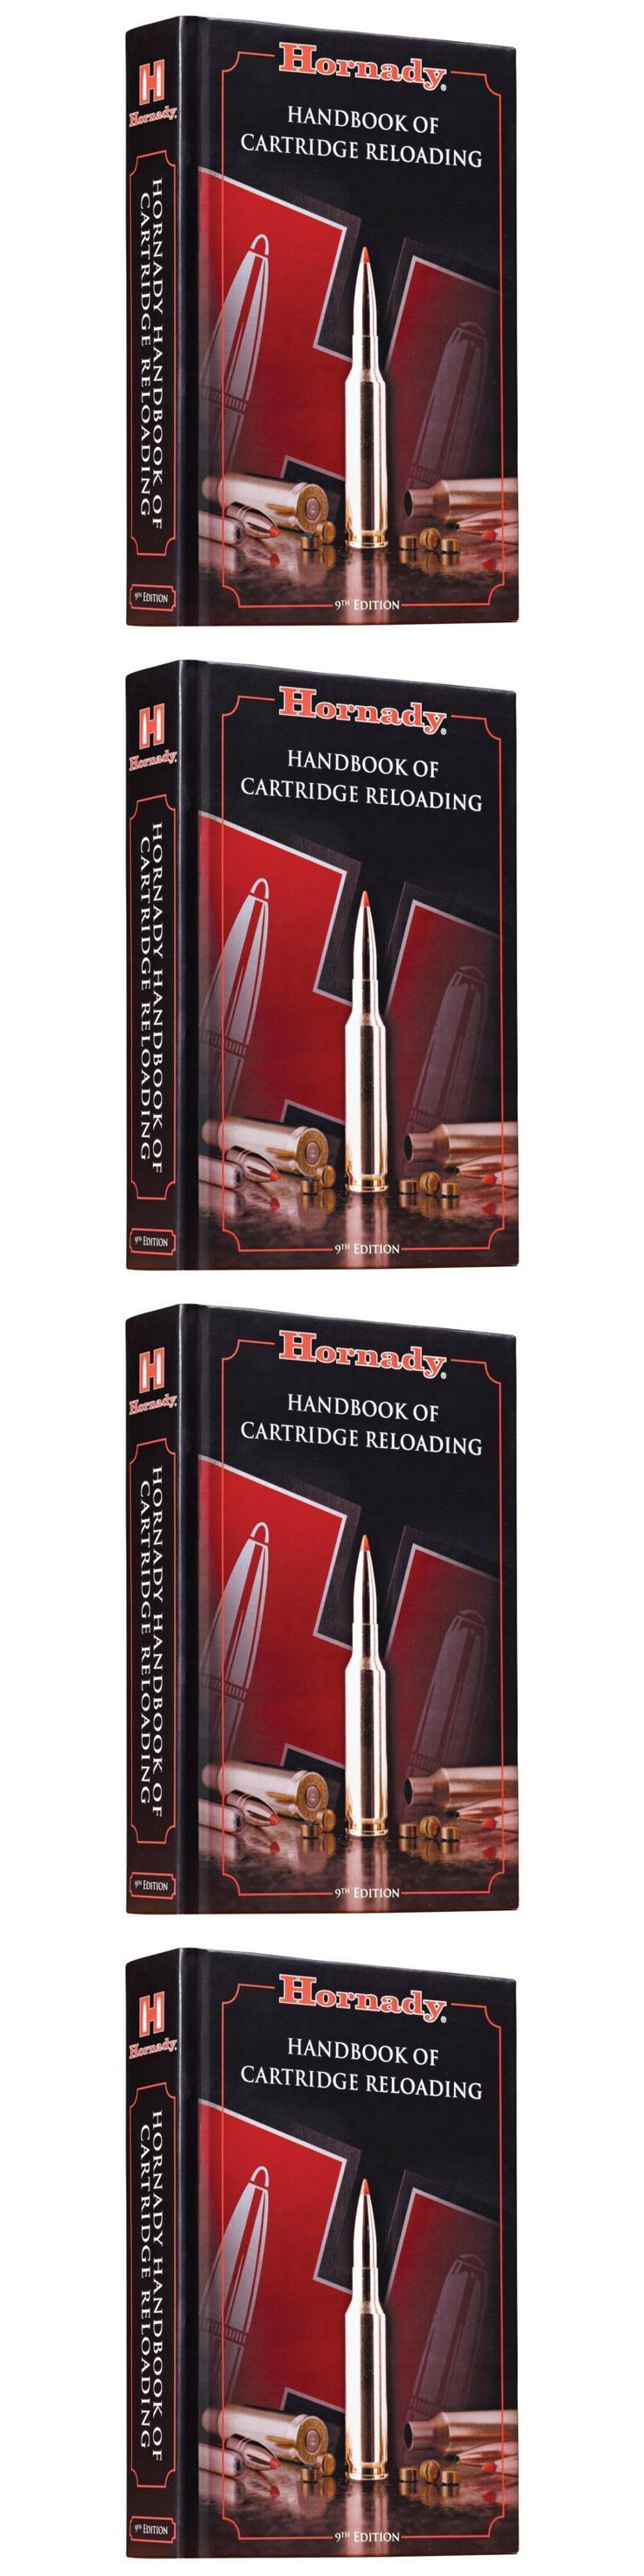 Manuals and Instruction Material 111293: Hornady Handbook Of Cartridge Reloading Manual 9Th Ed -> BUY IT NOW ONLY: $33.26 on eBay!